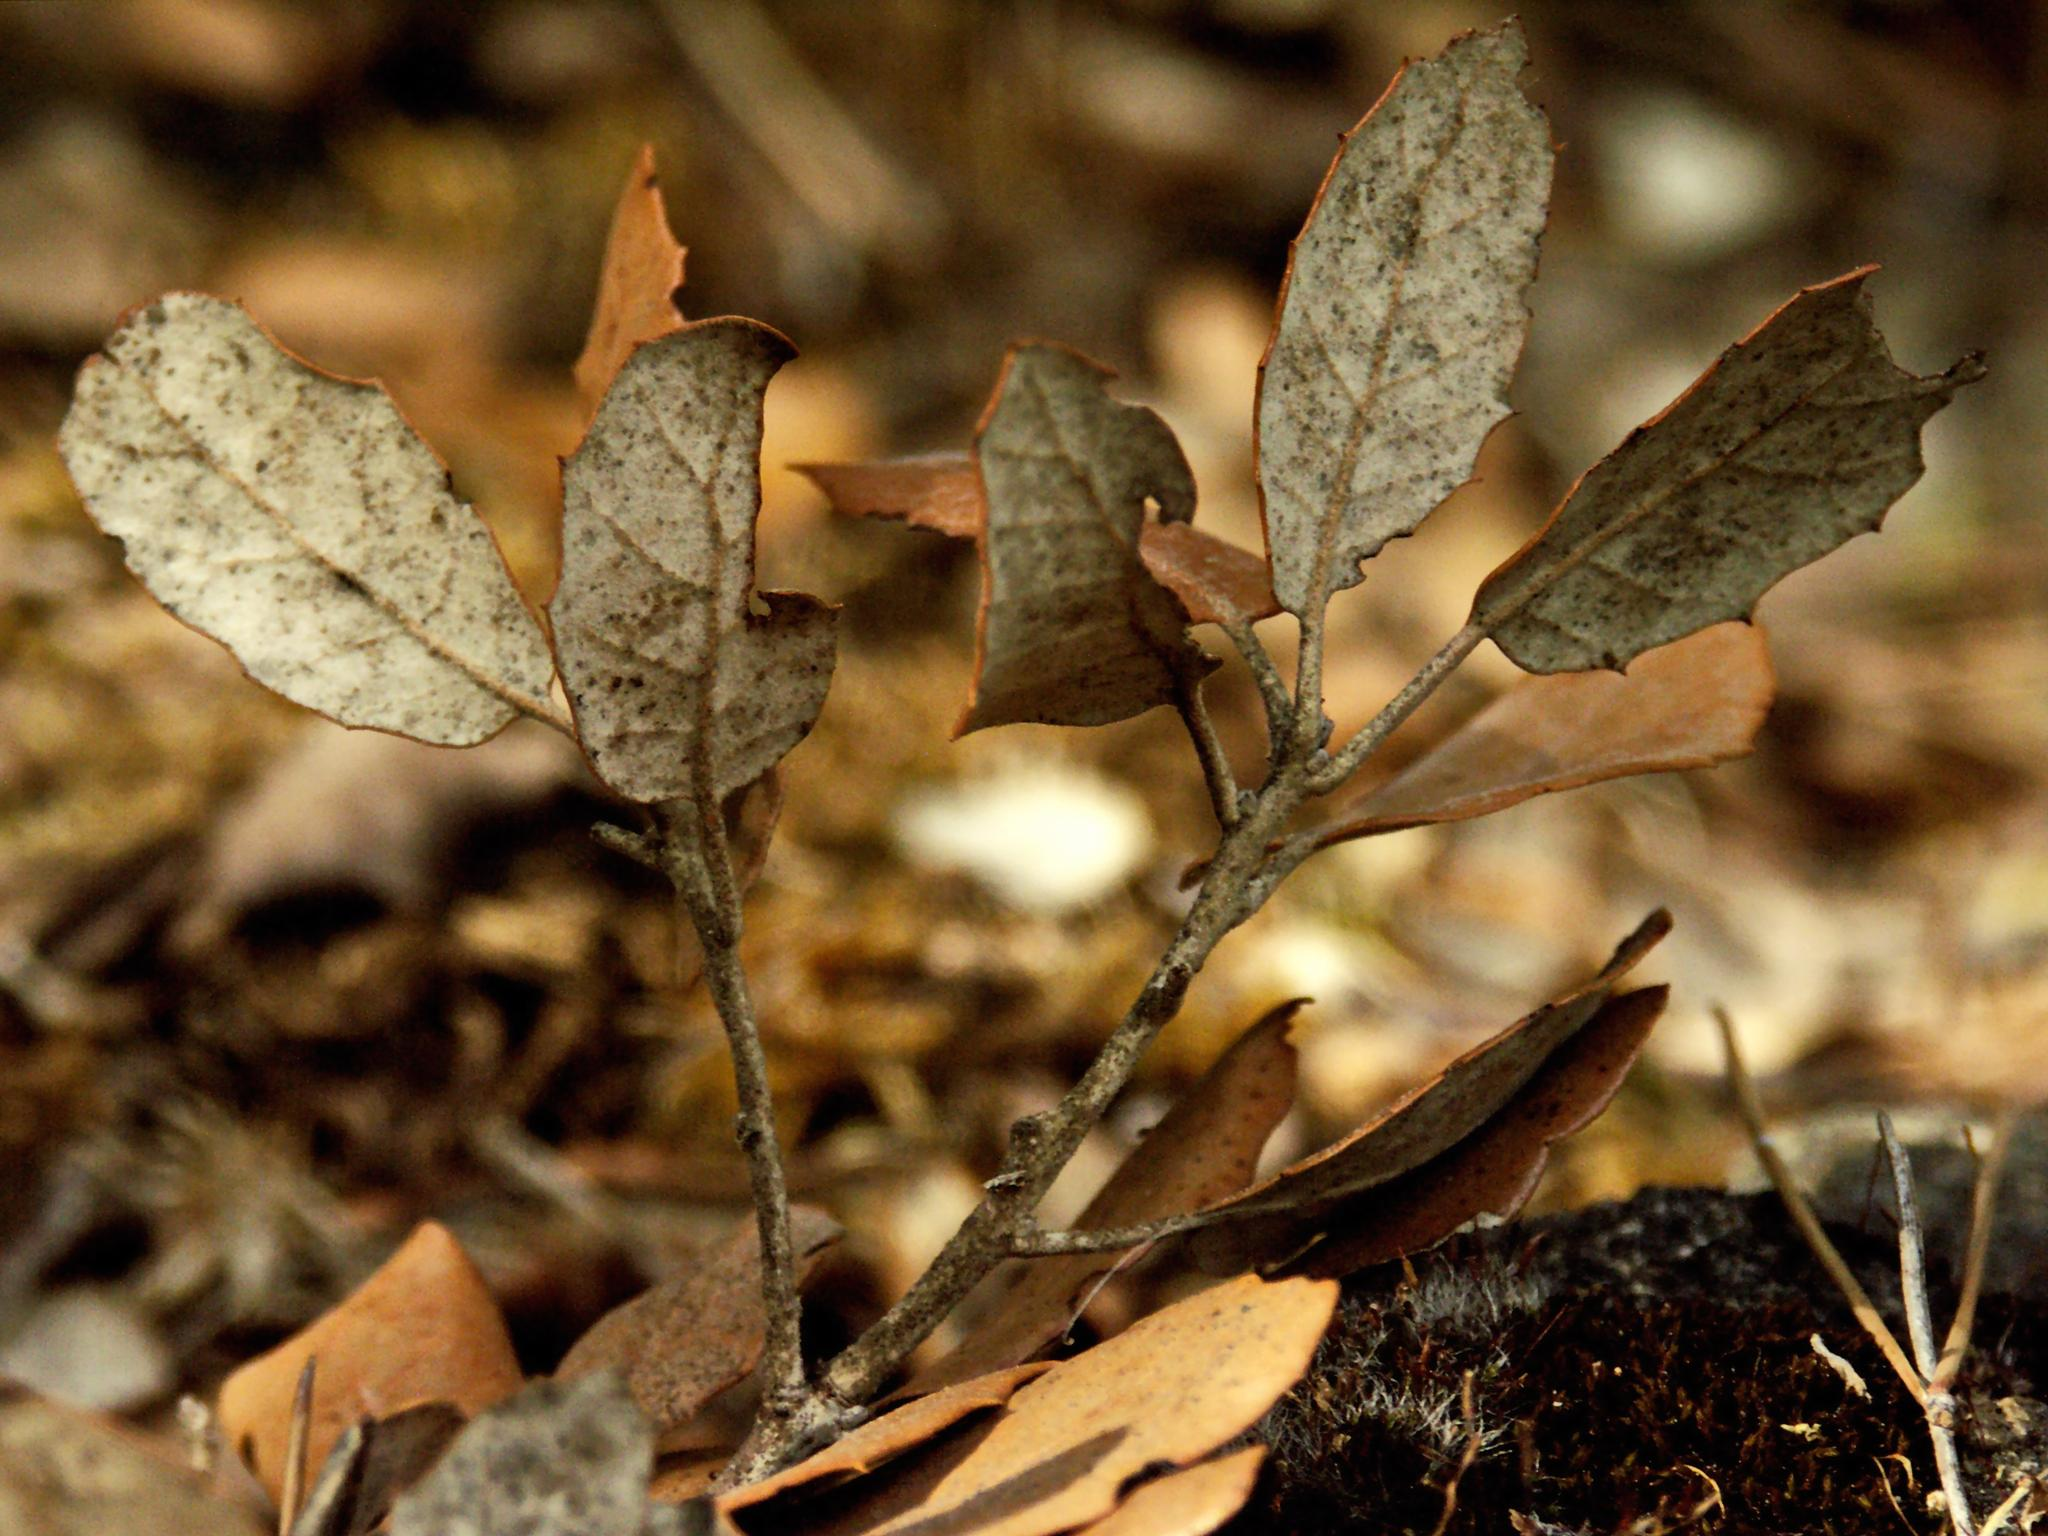 Leaves by Raymond Thill